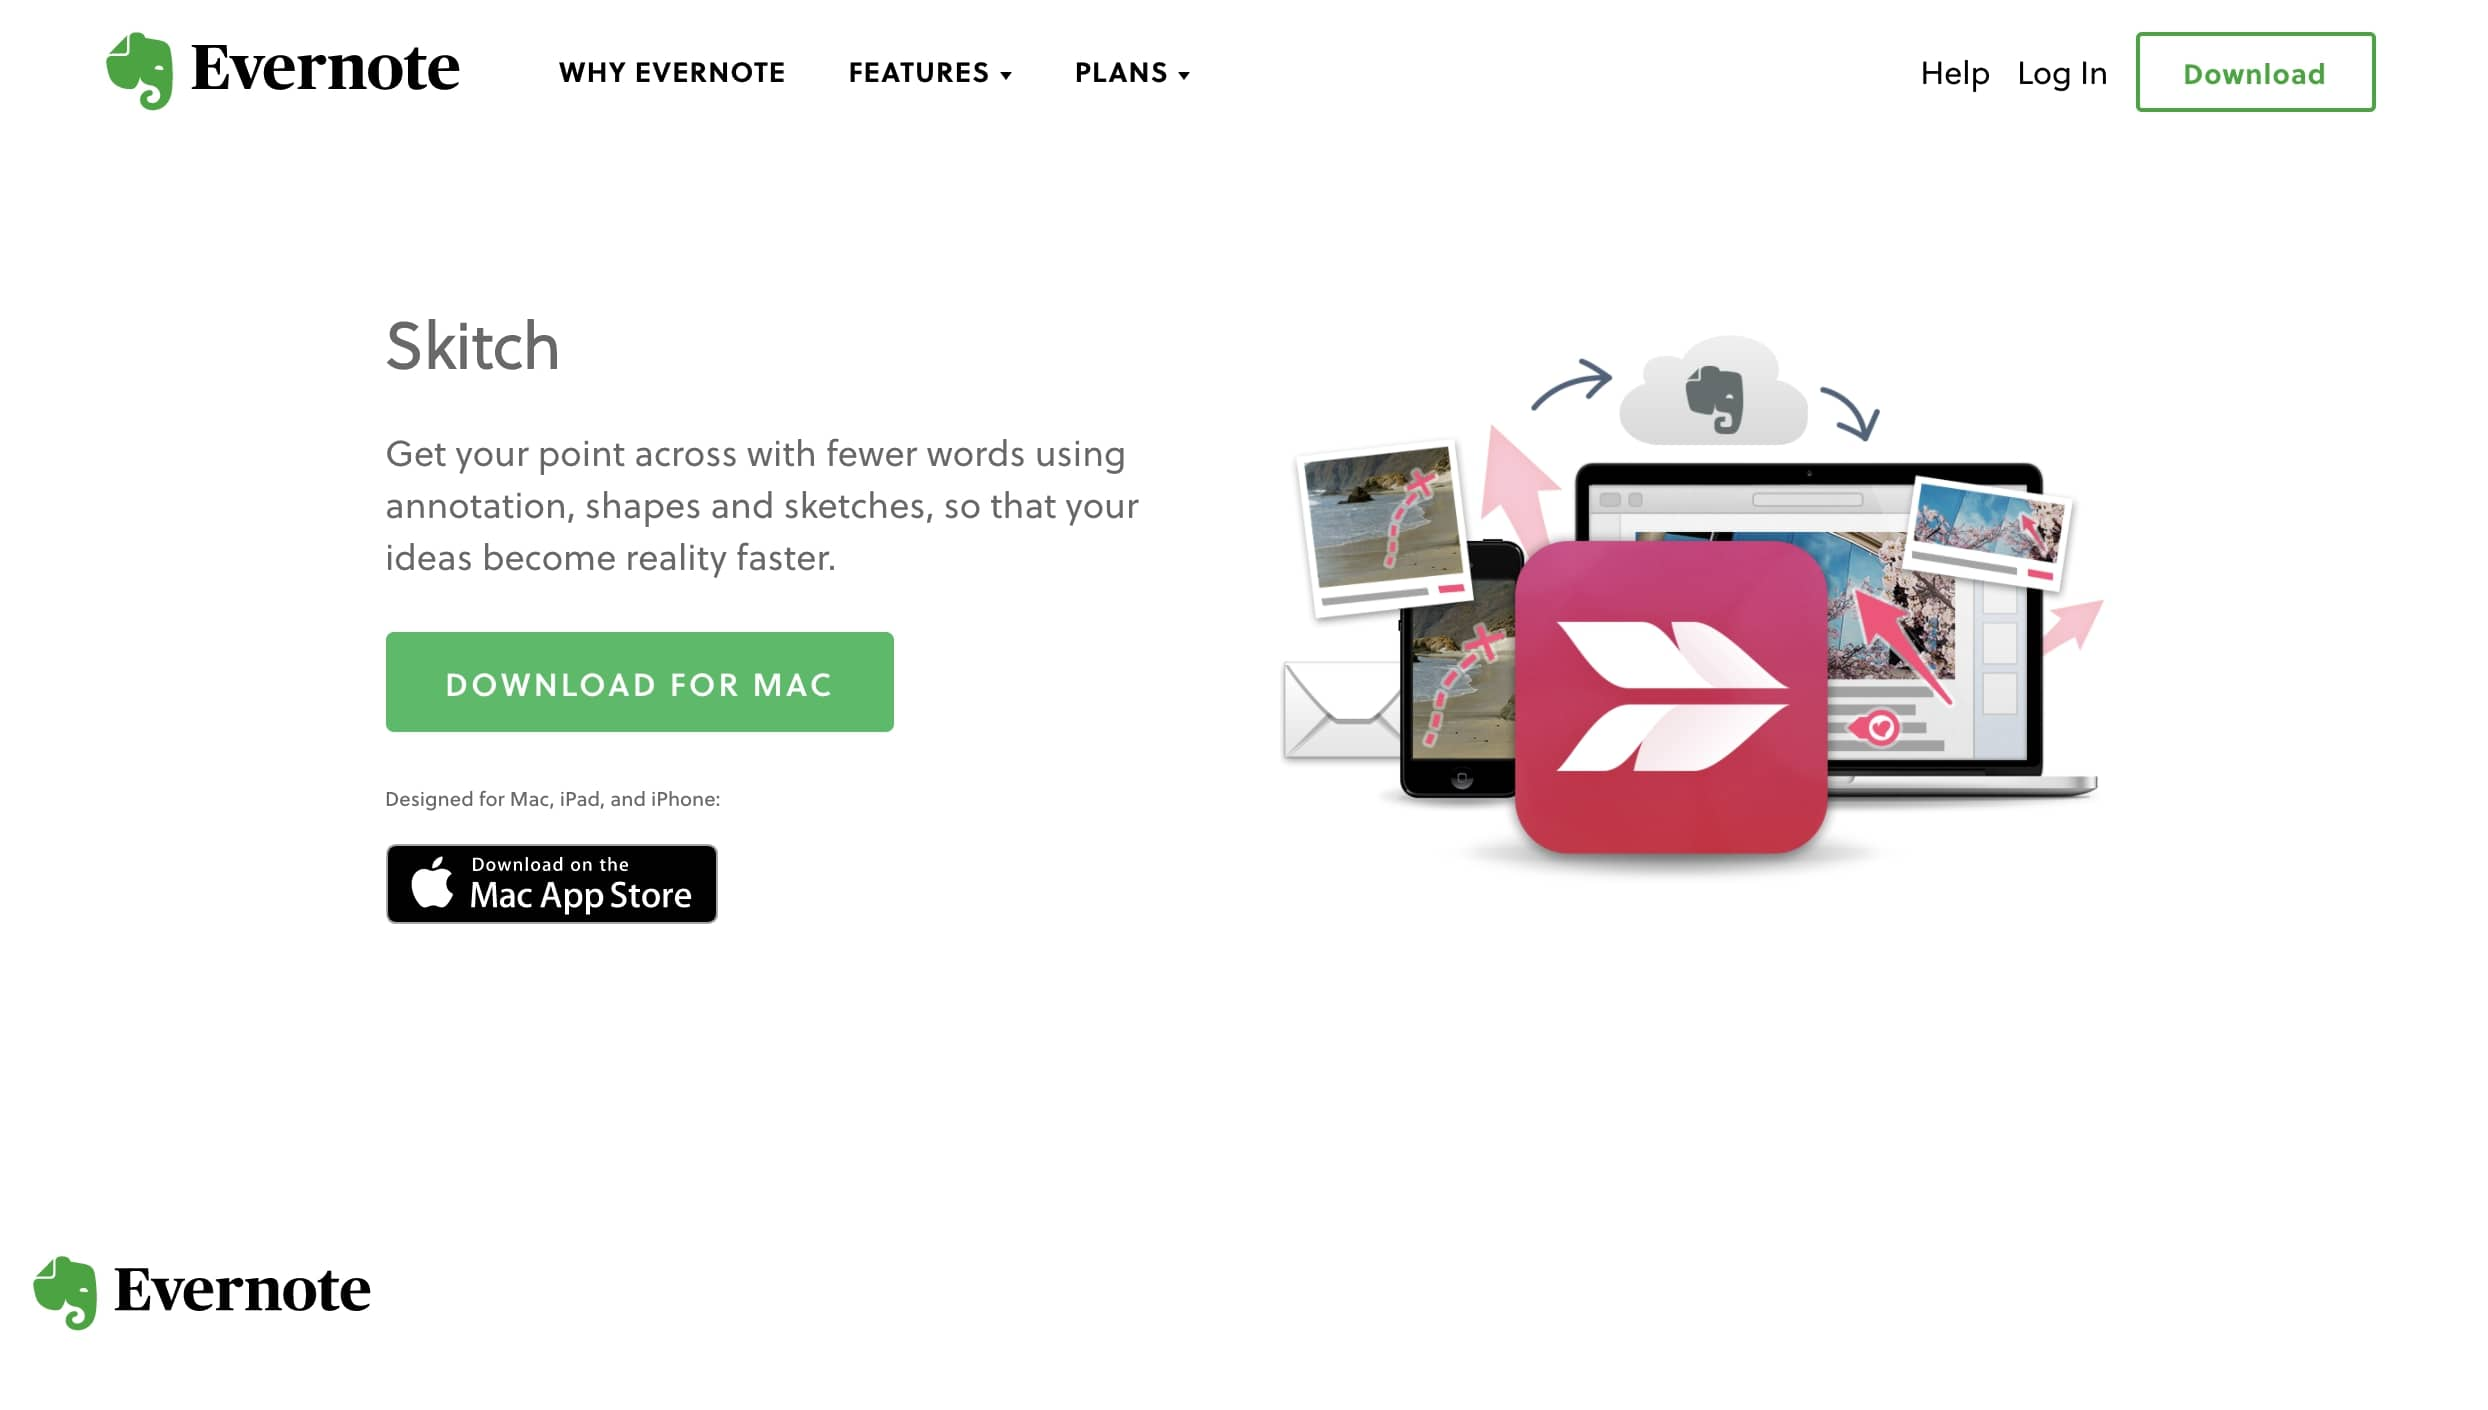 evernote skitch for mac